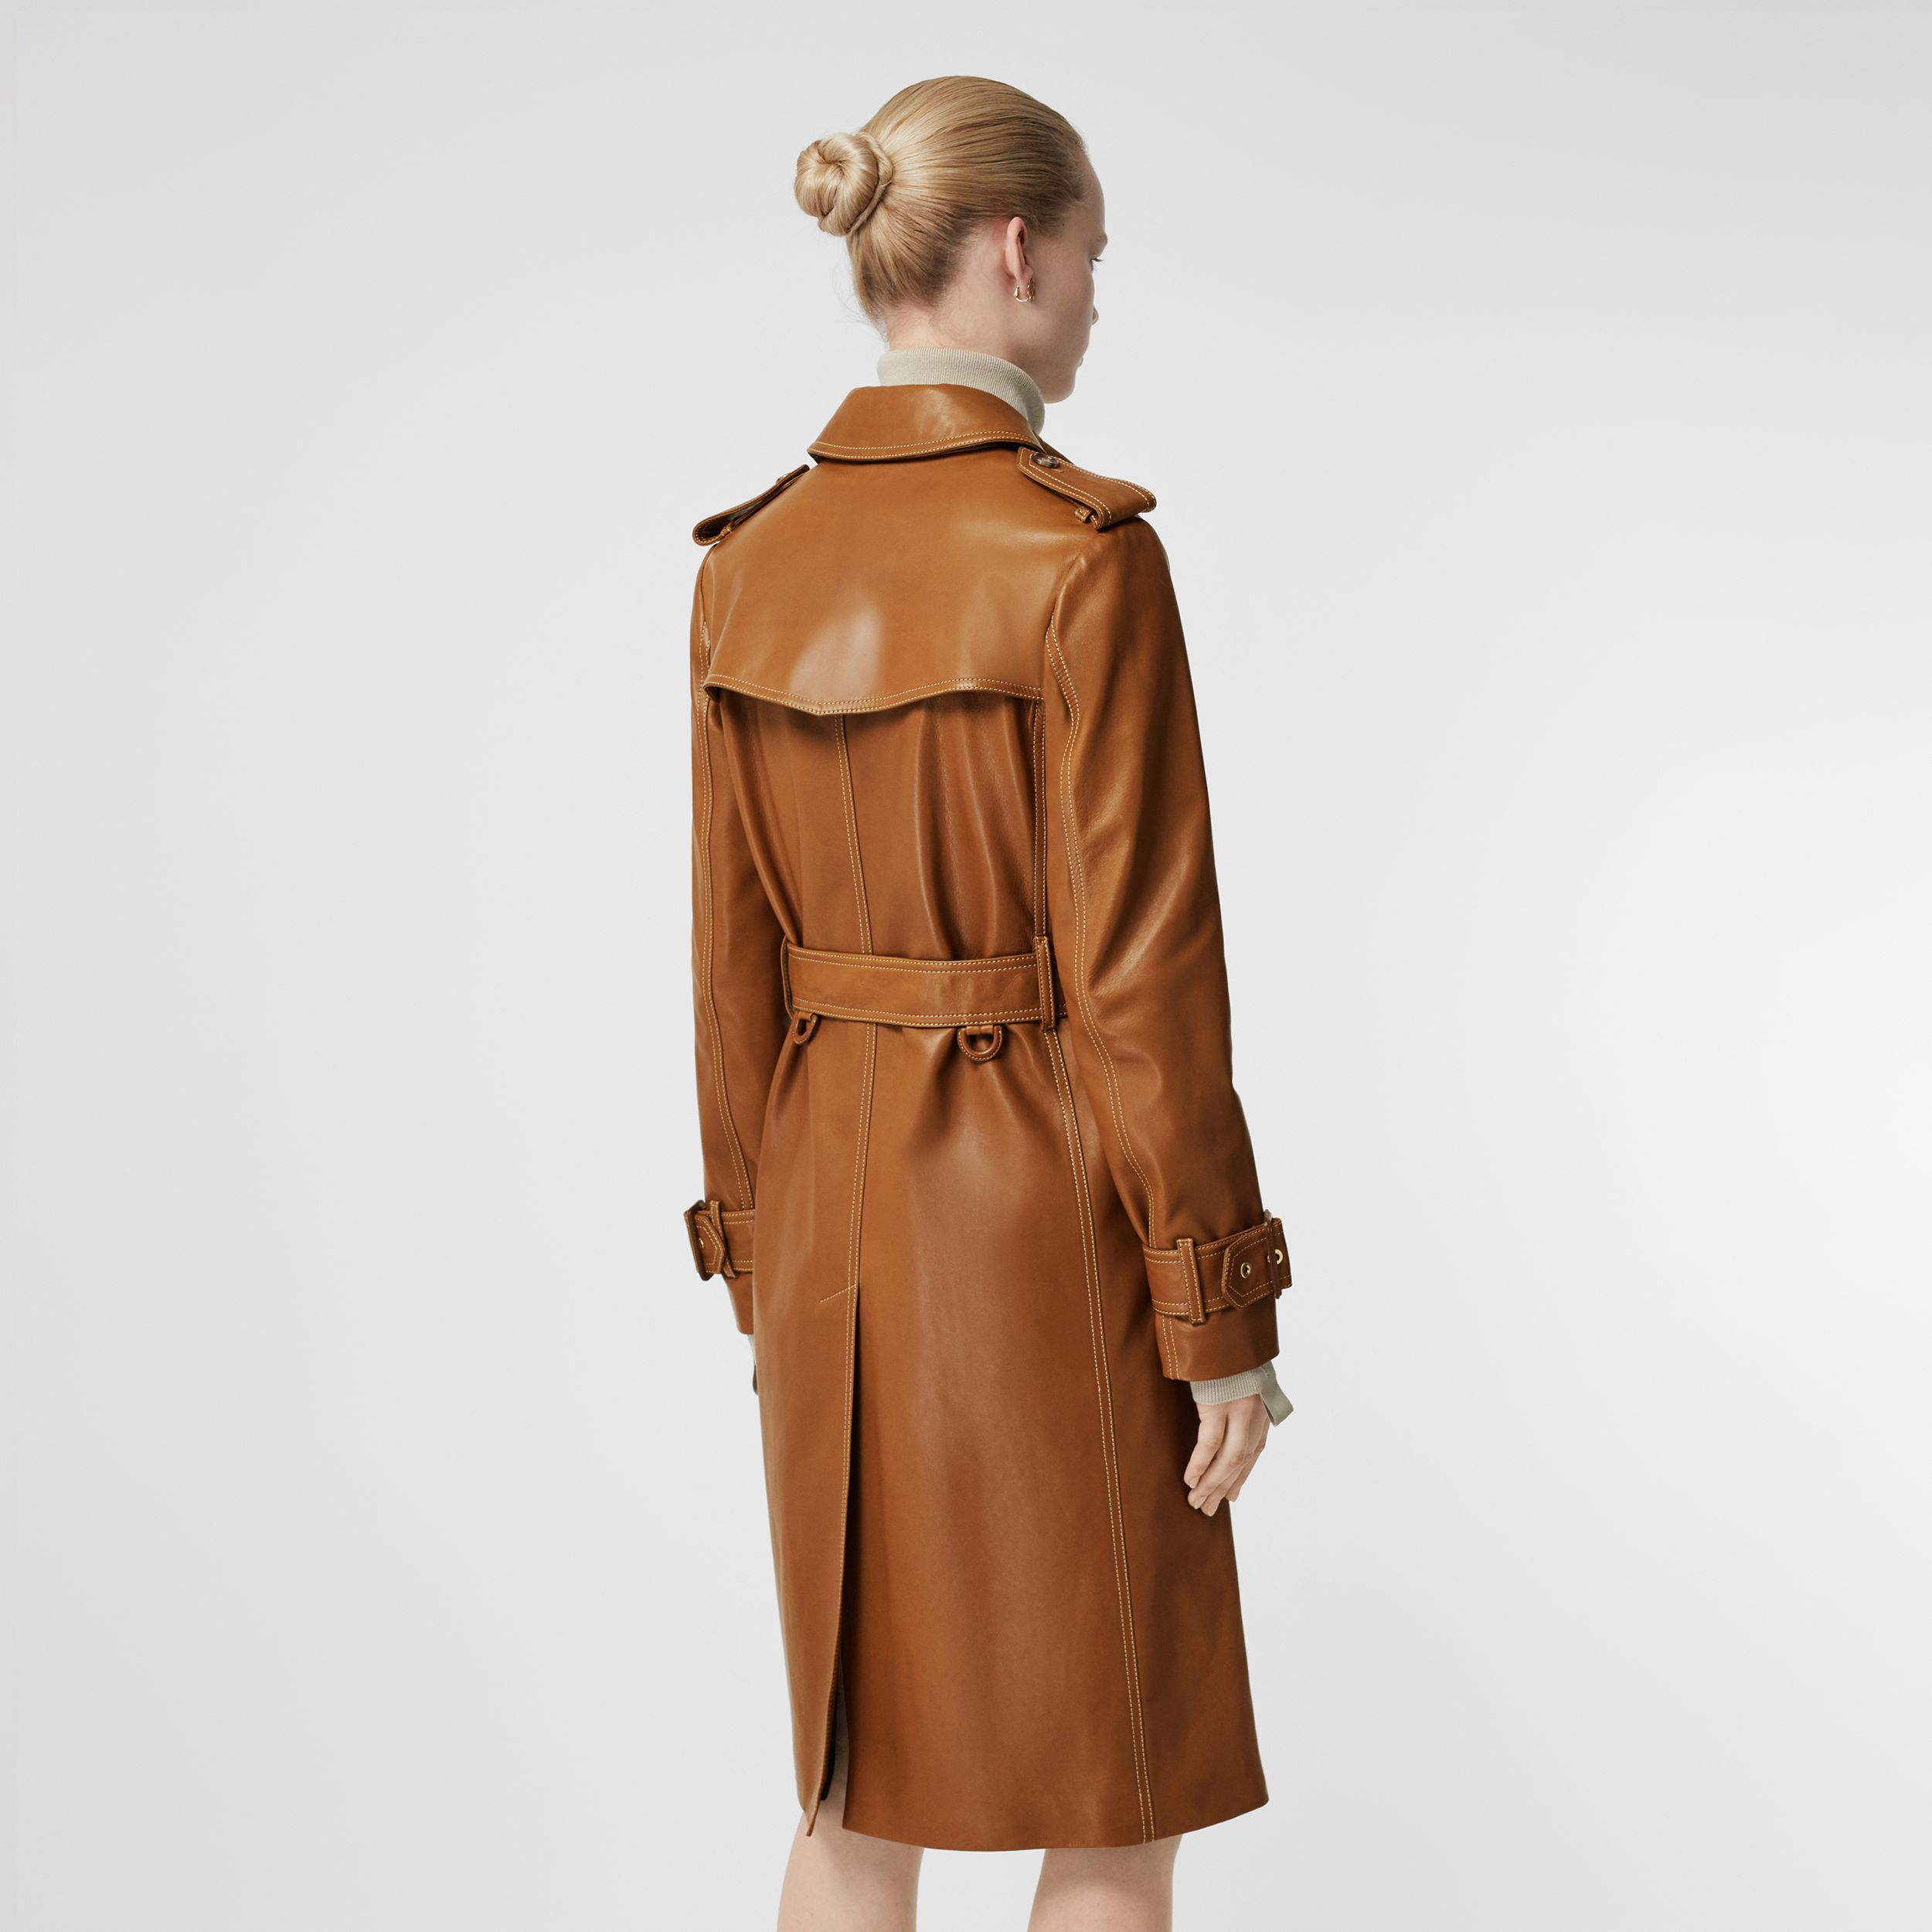 Topstitch Detail Lambskin Trench Coat in Maple - Women | Burberry - 3